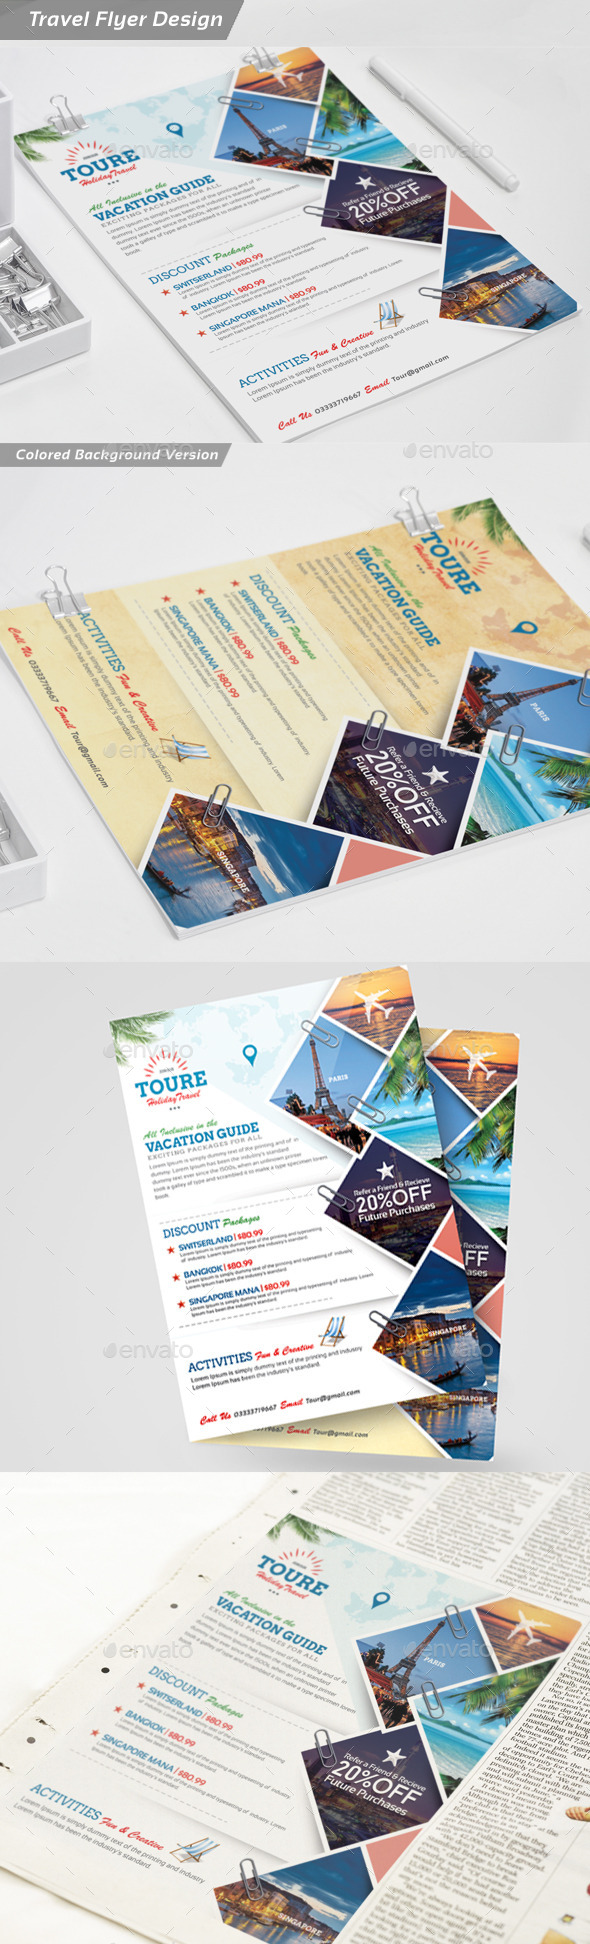 Holiday Travel and Tour Flyer - Corporate Flyers